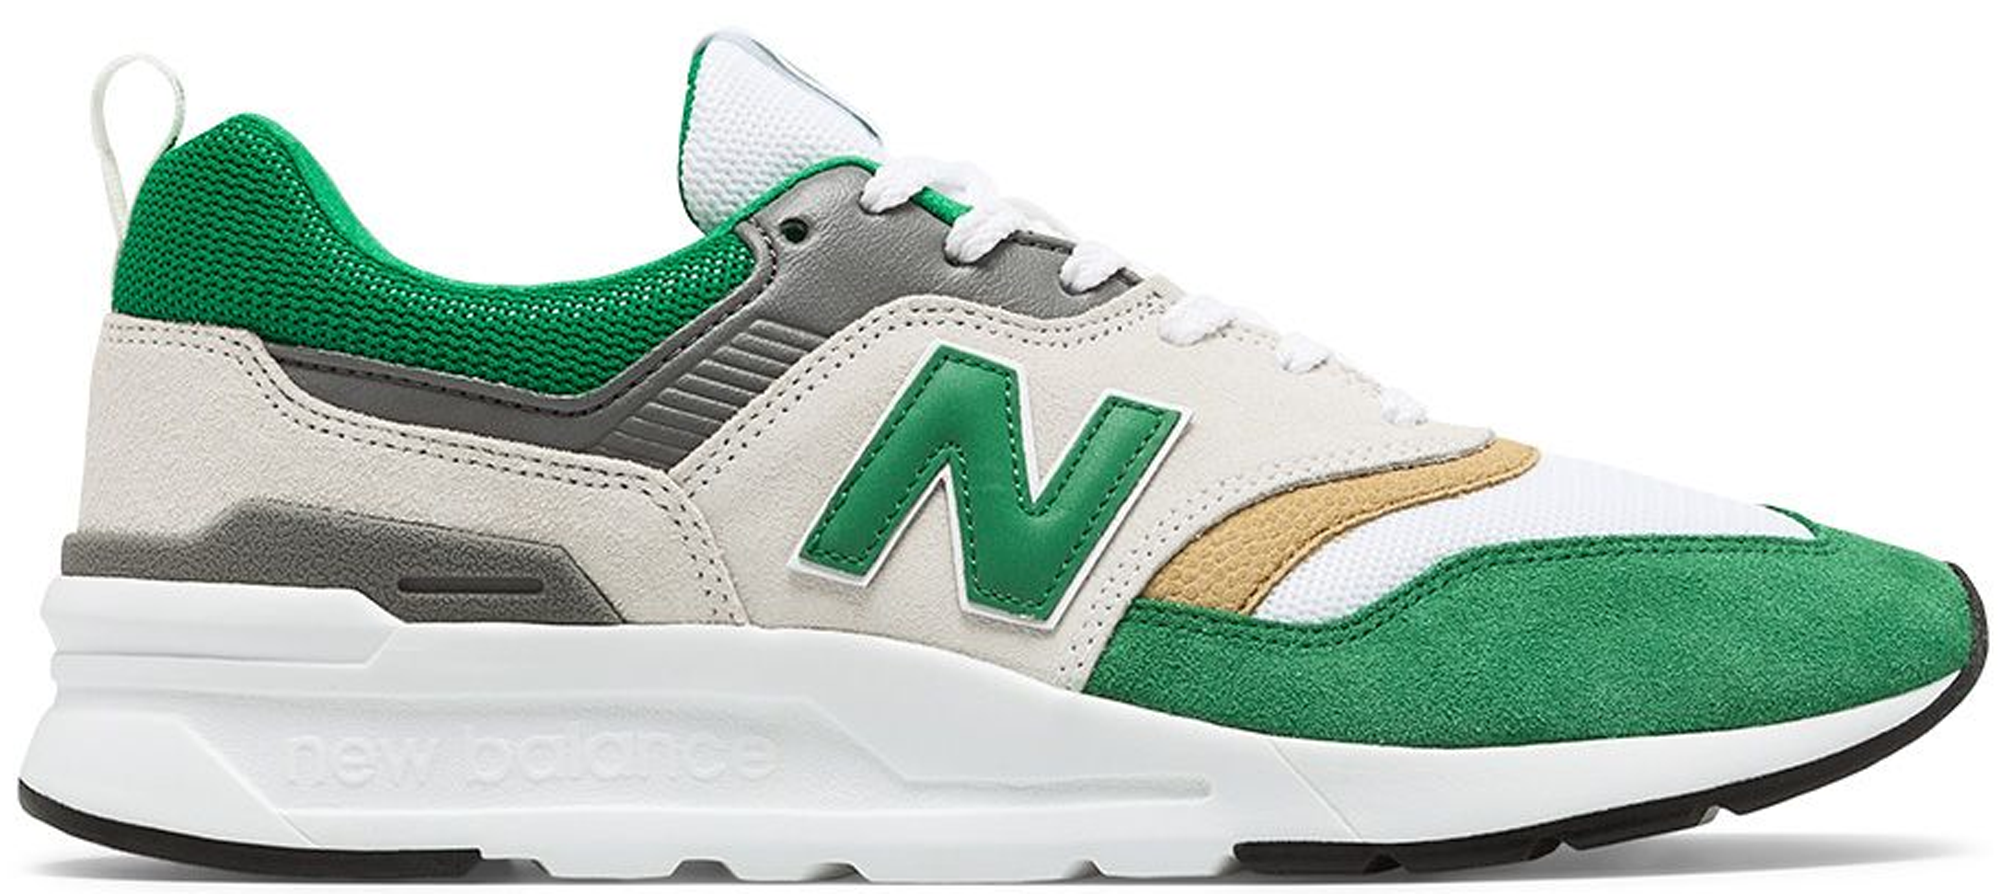 New Balance 997 Celtic - Sneakers